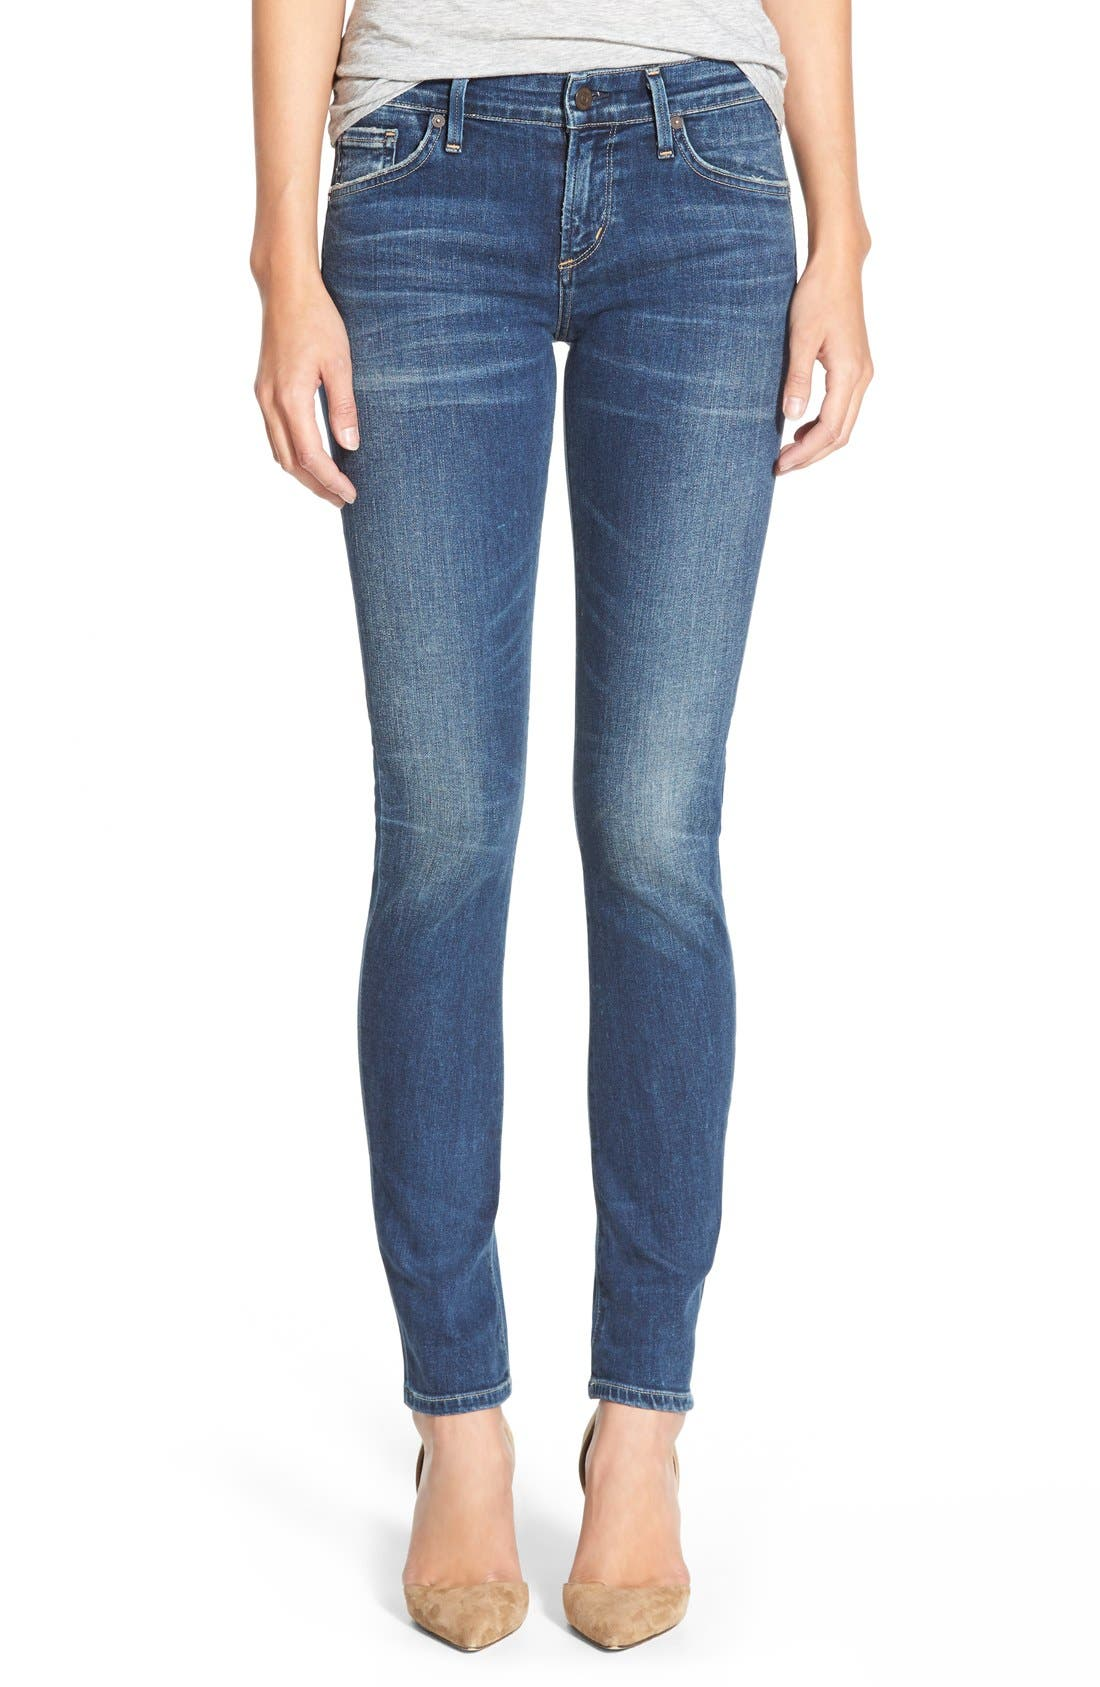 'Arielle' Skinny Jeans,                             Main thumbnail 1, color,                             400